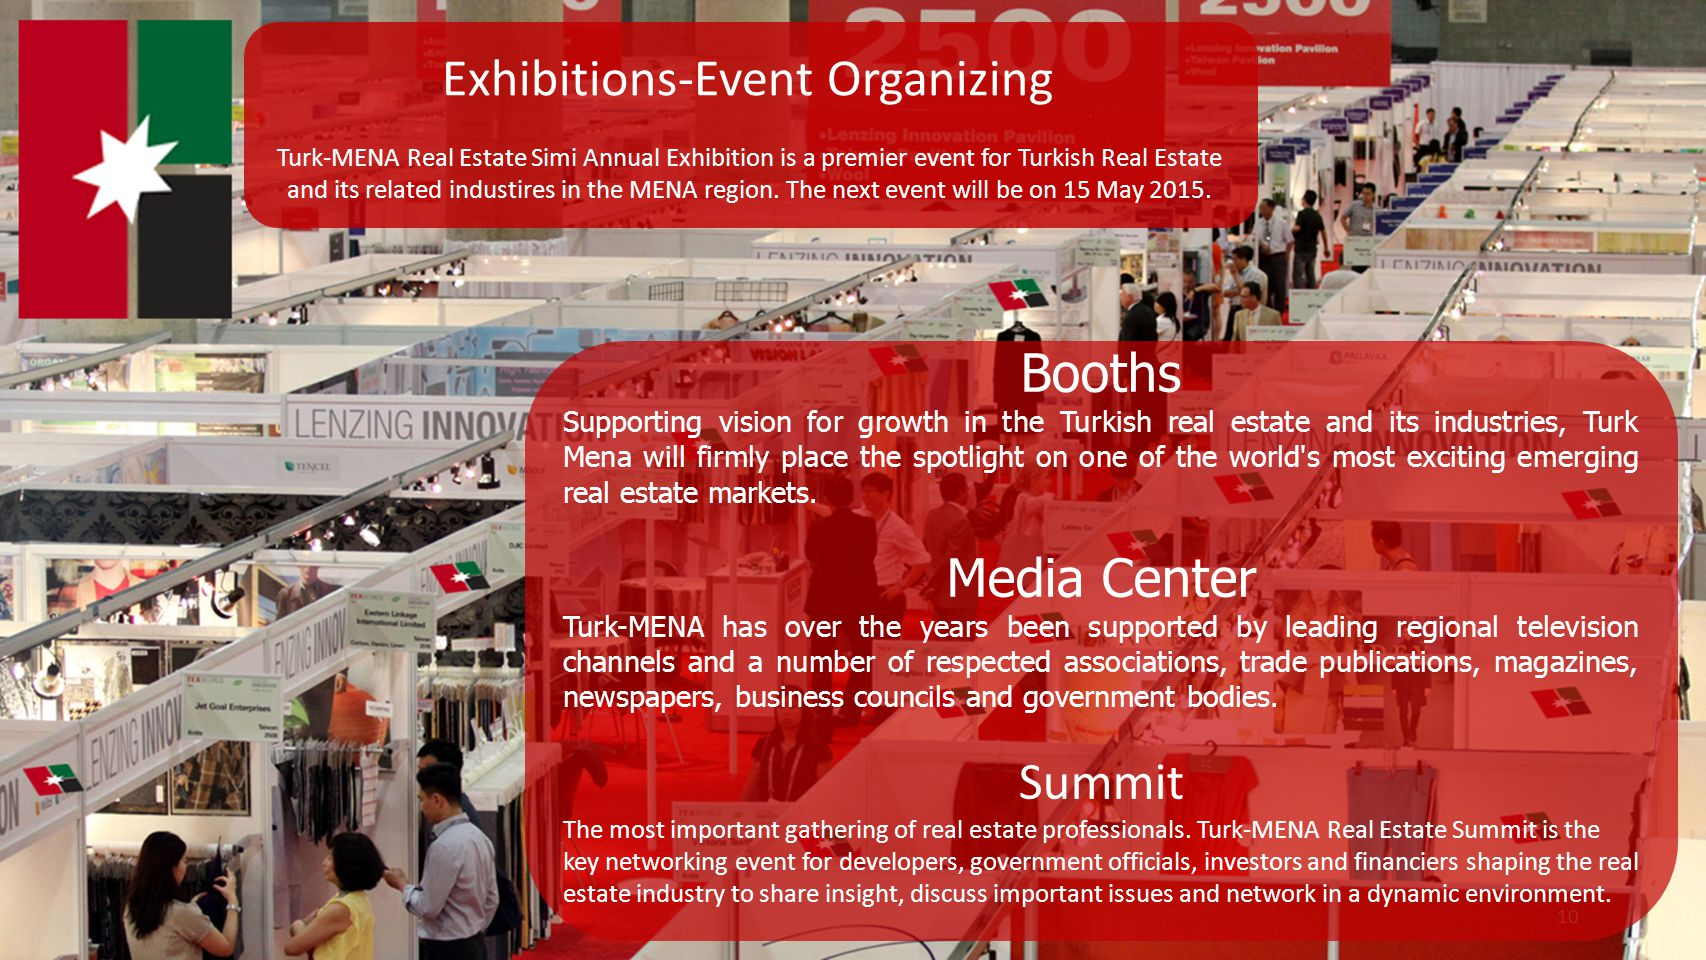 Exhibitions-Event Organizing